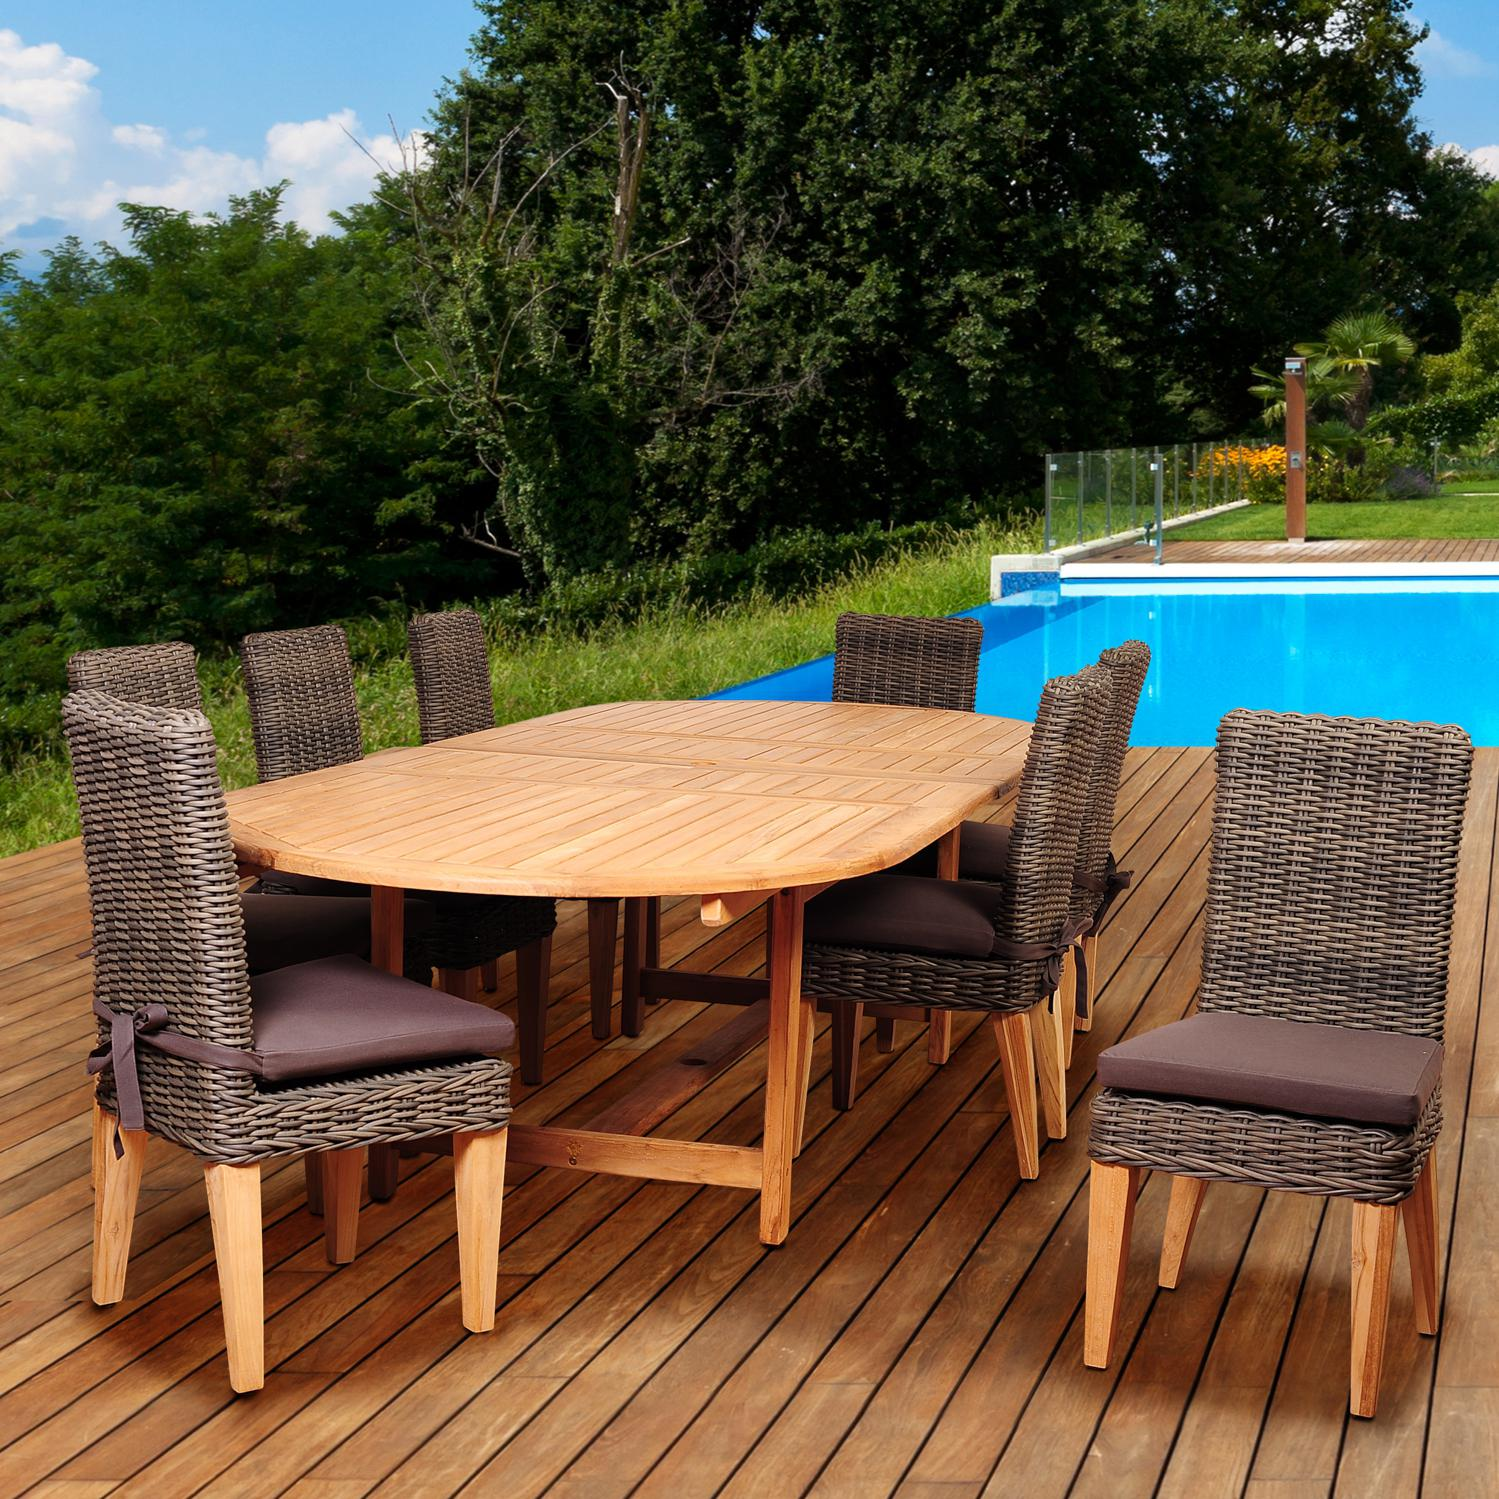 Amazonia Singapore 8-person Resin Wicker Patio Dining Set With Teak Extension Table